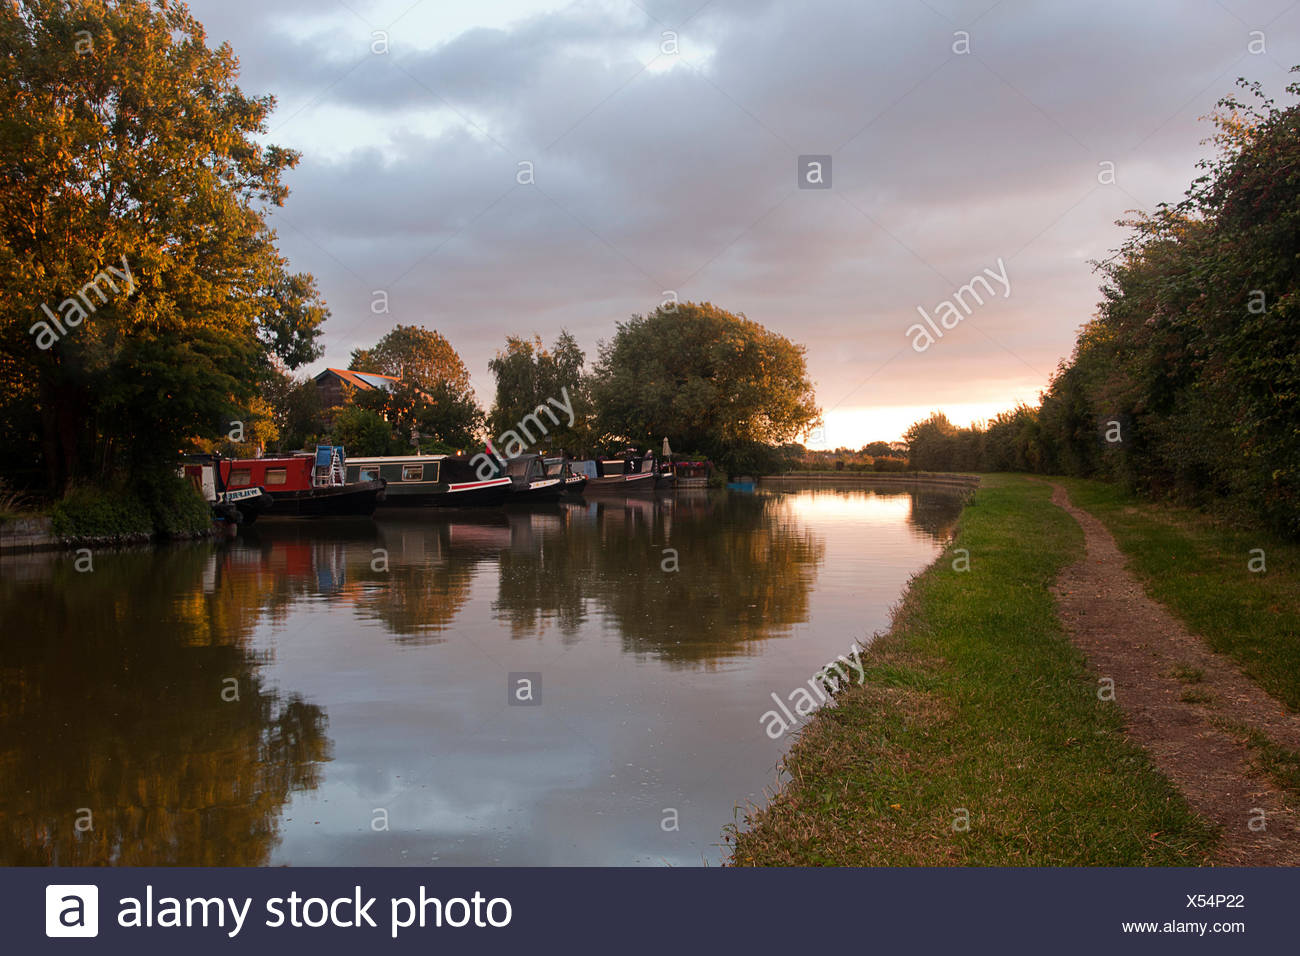 narrowboats and towpath along Cooks Wharf at sunset, Grand Union Canal Outer Aylesbury Ring, Cheddington, Buckinghamshire, England Stock Photo